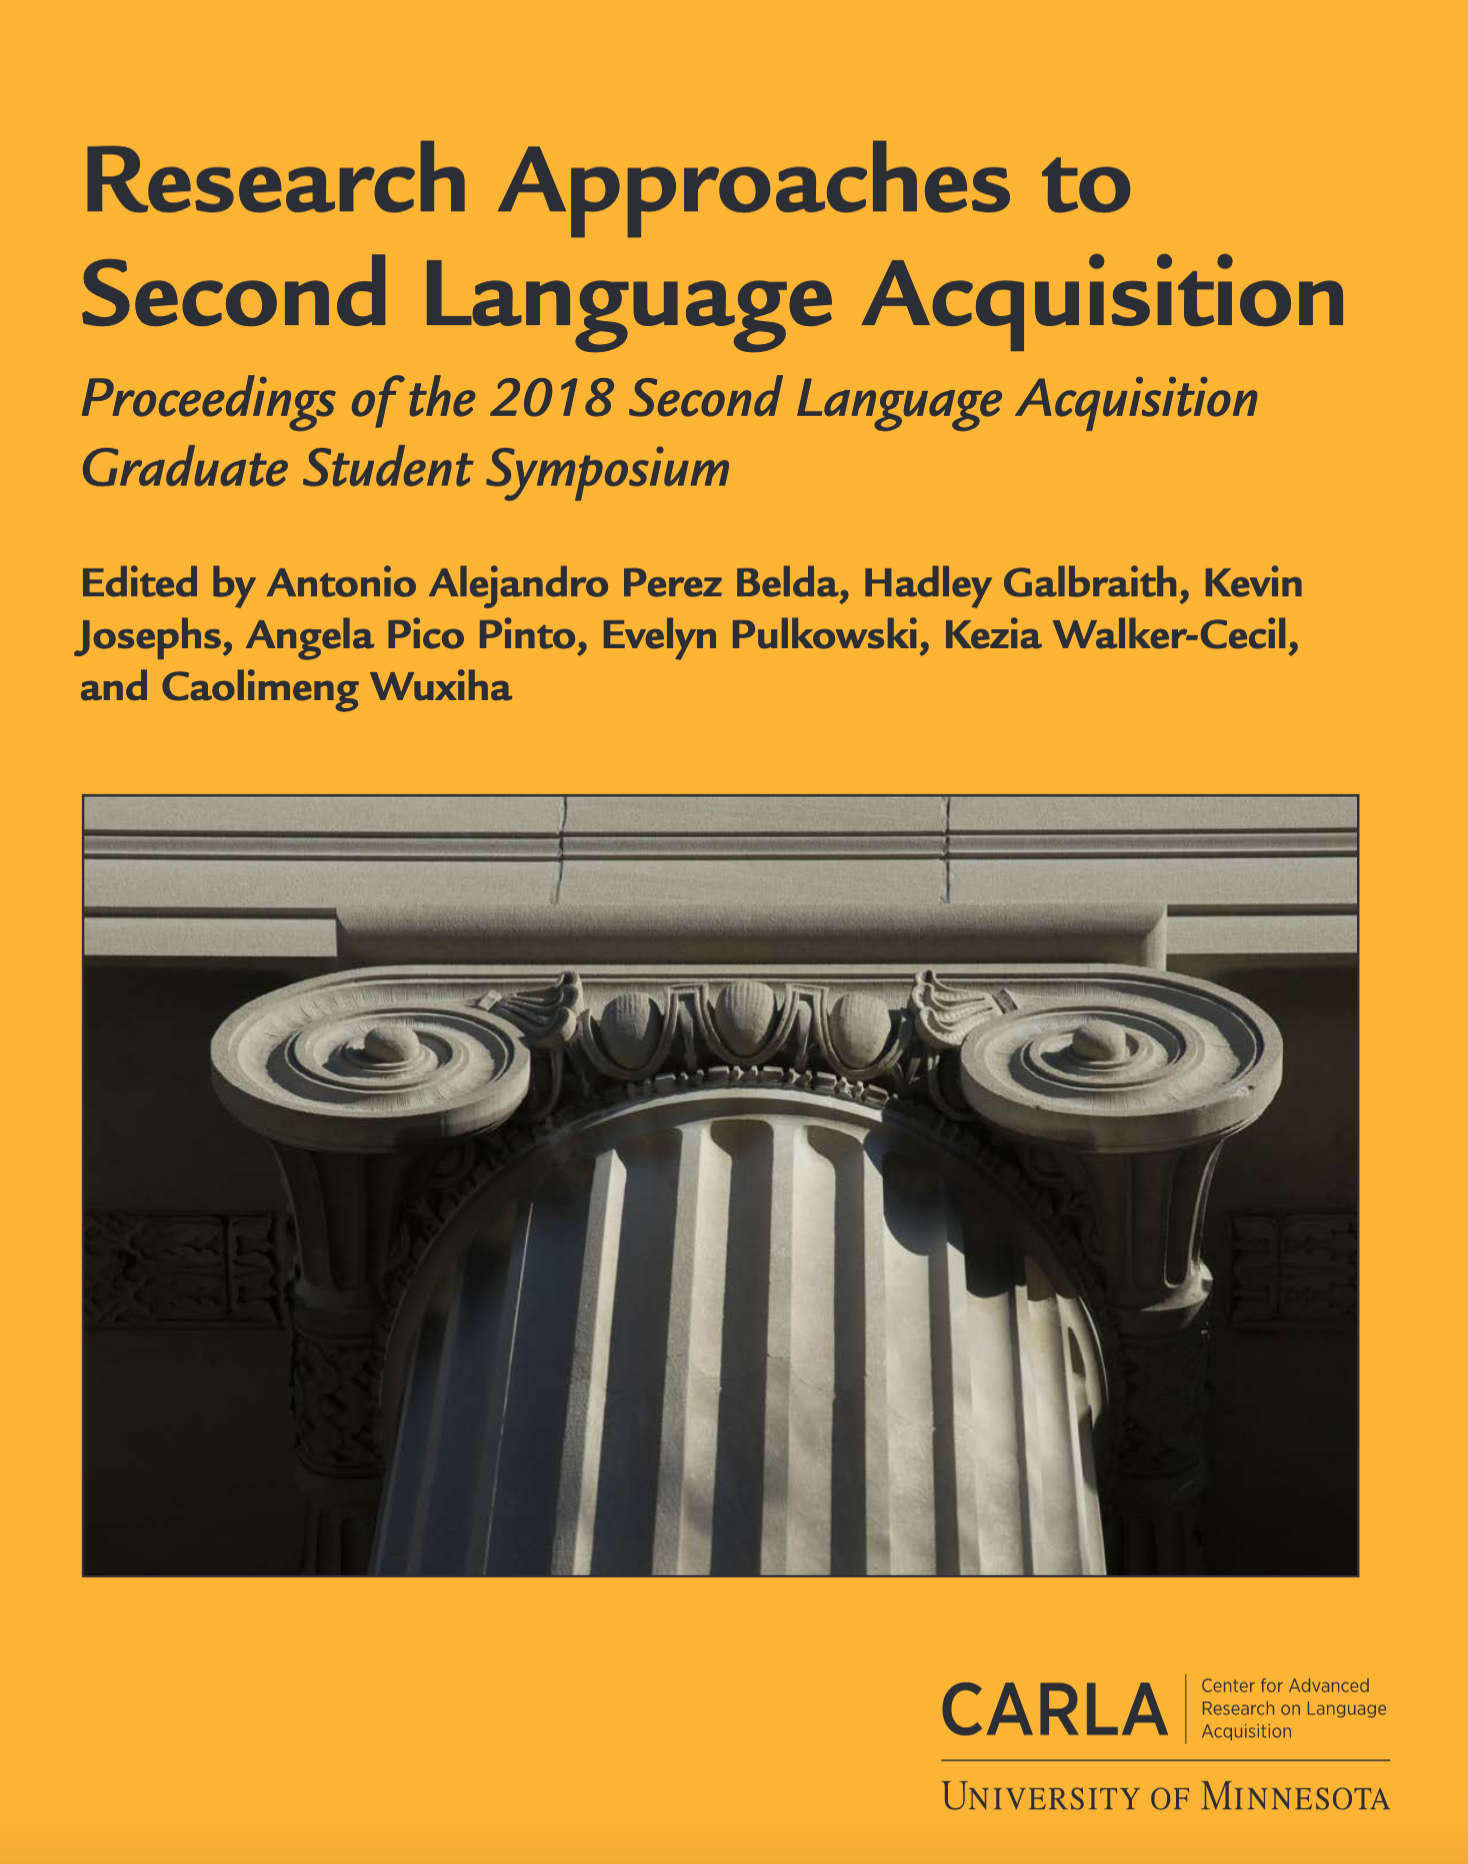 Research Approaches to Second Language Acquisition